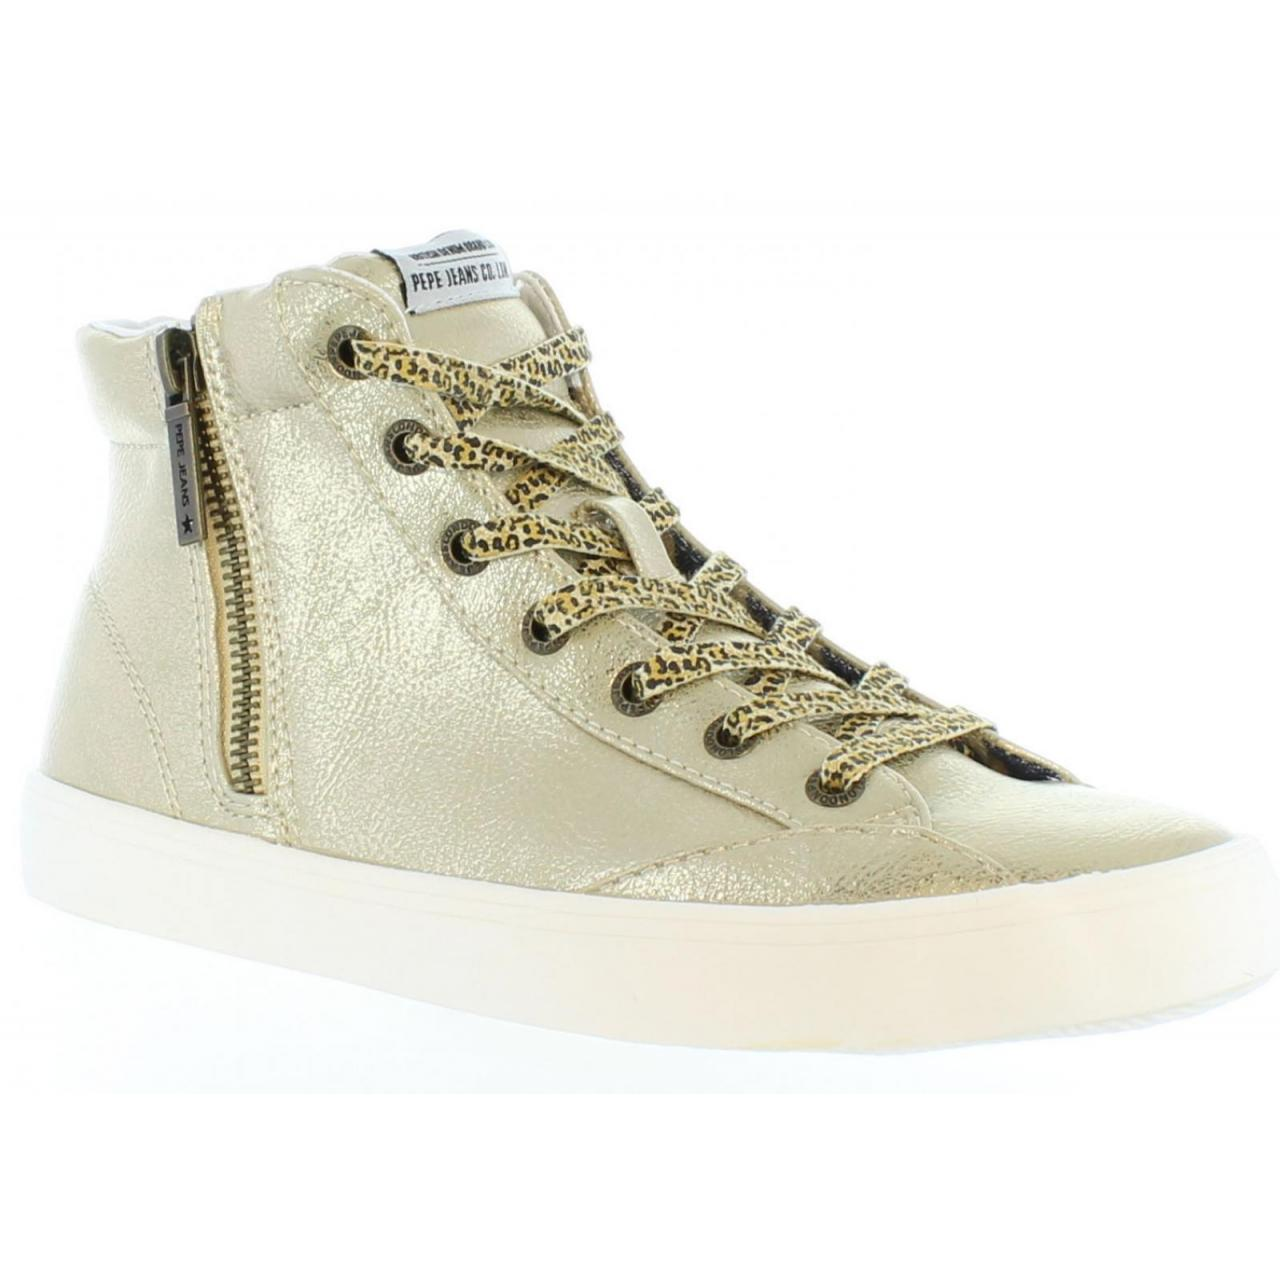 Botines Pepe Jeans Gold - PLS30359 CLINTON 099 GOLD